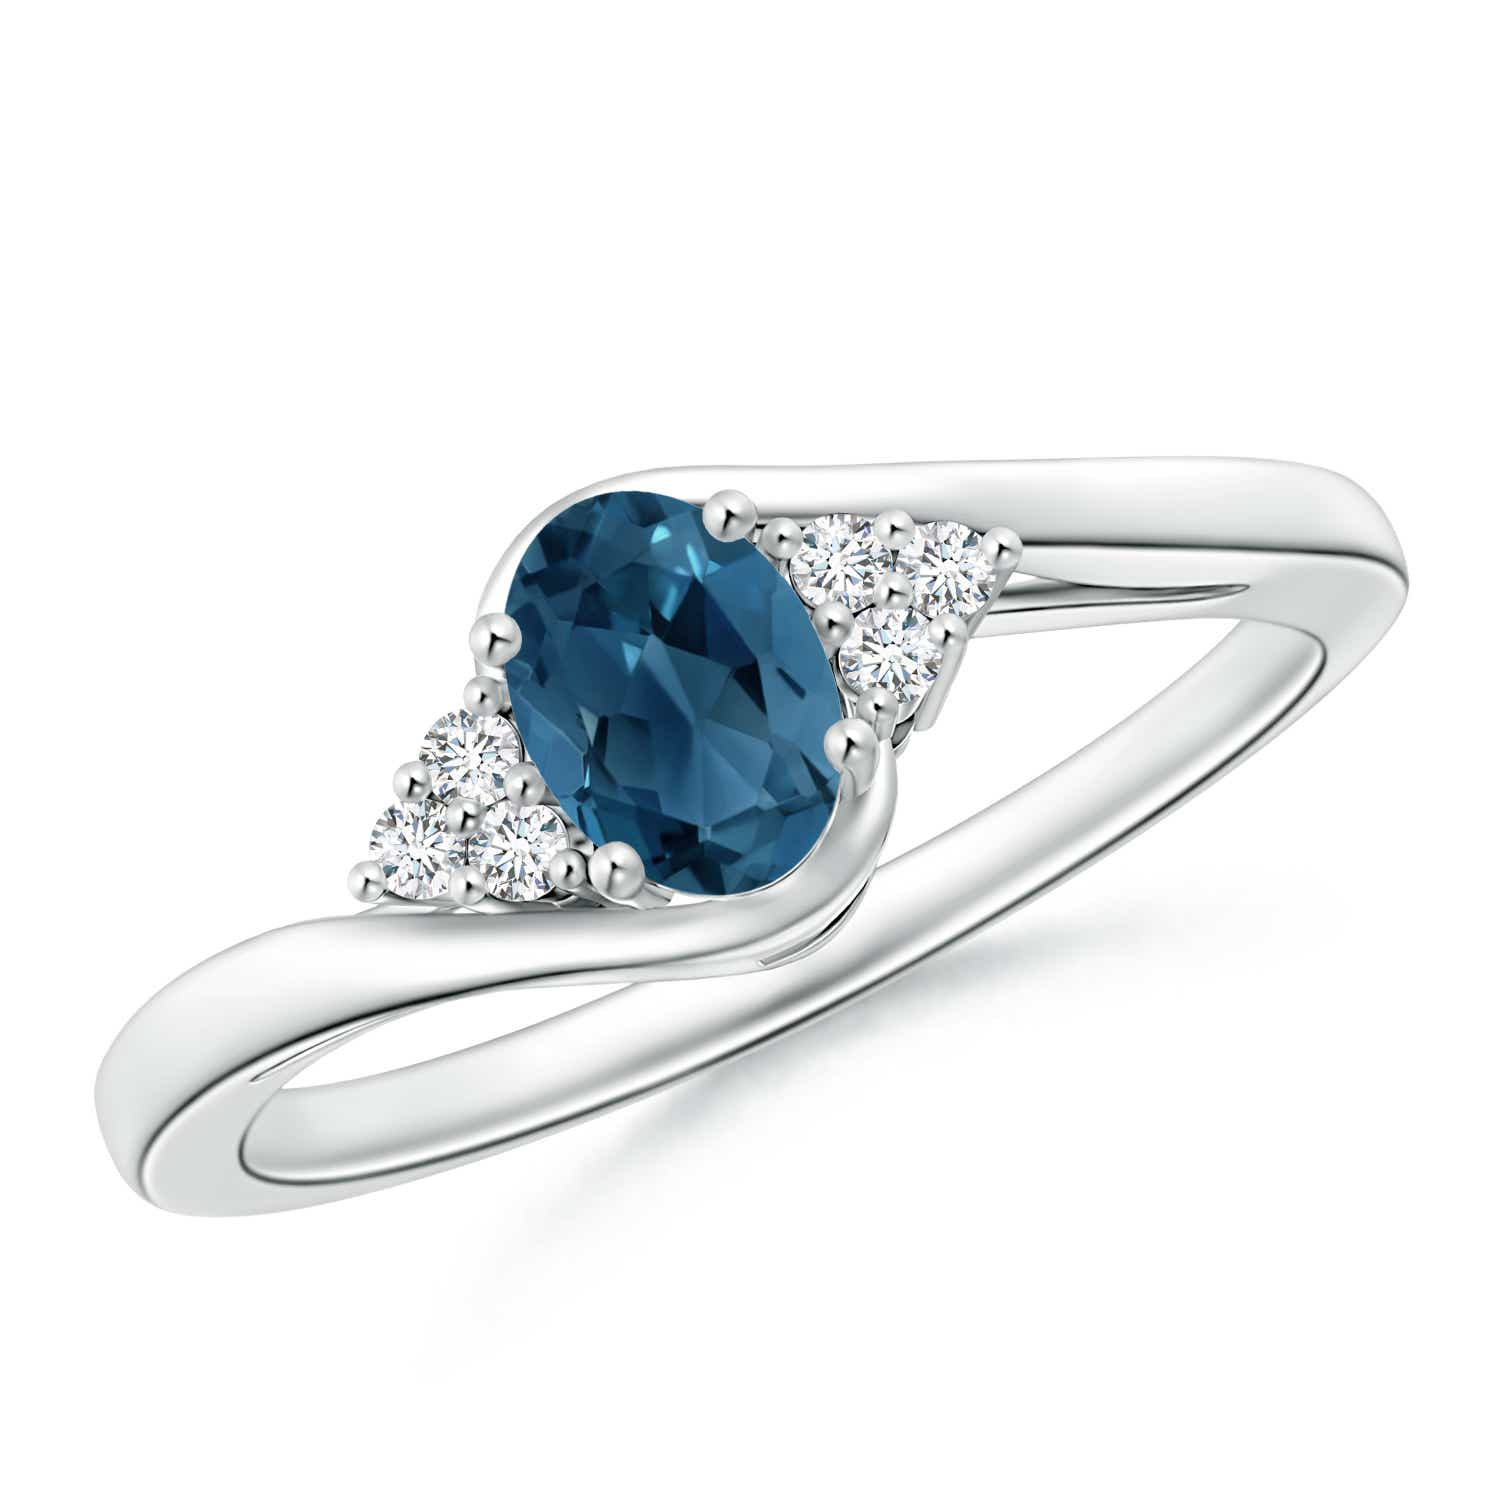 Angara Natural London Blue Topaz Engagement Ring in White Gold M2sG2x0